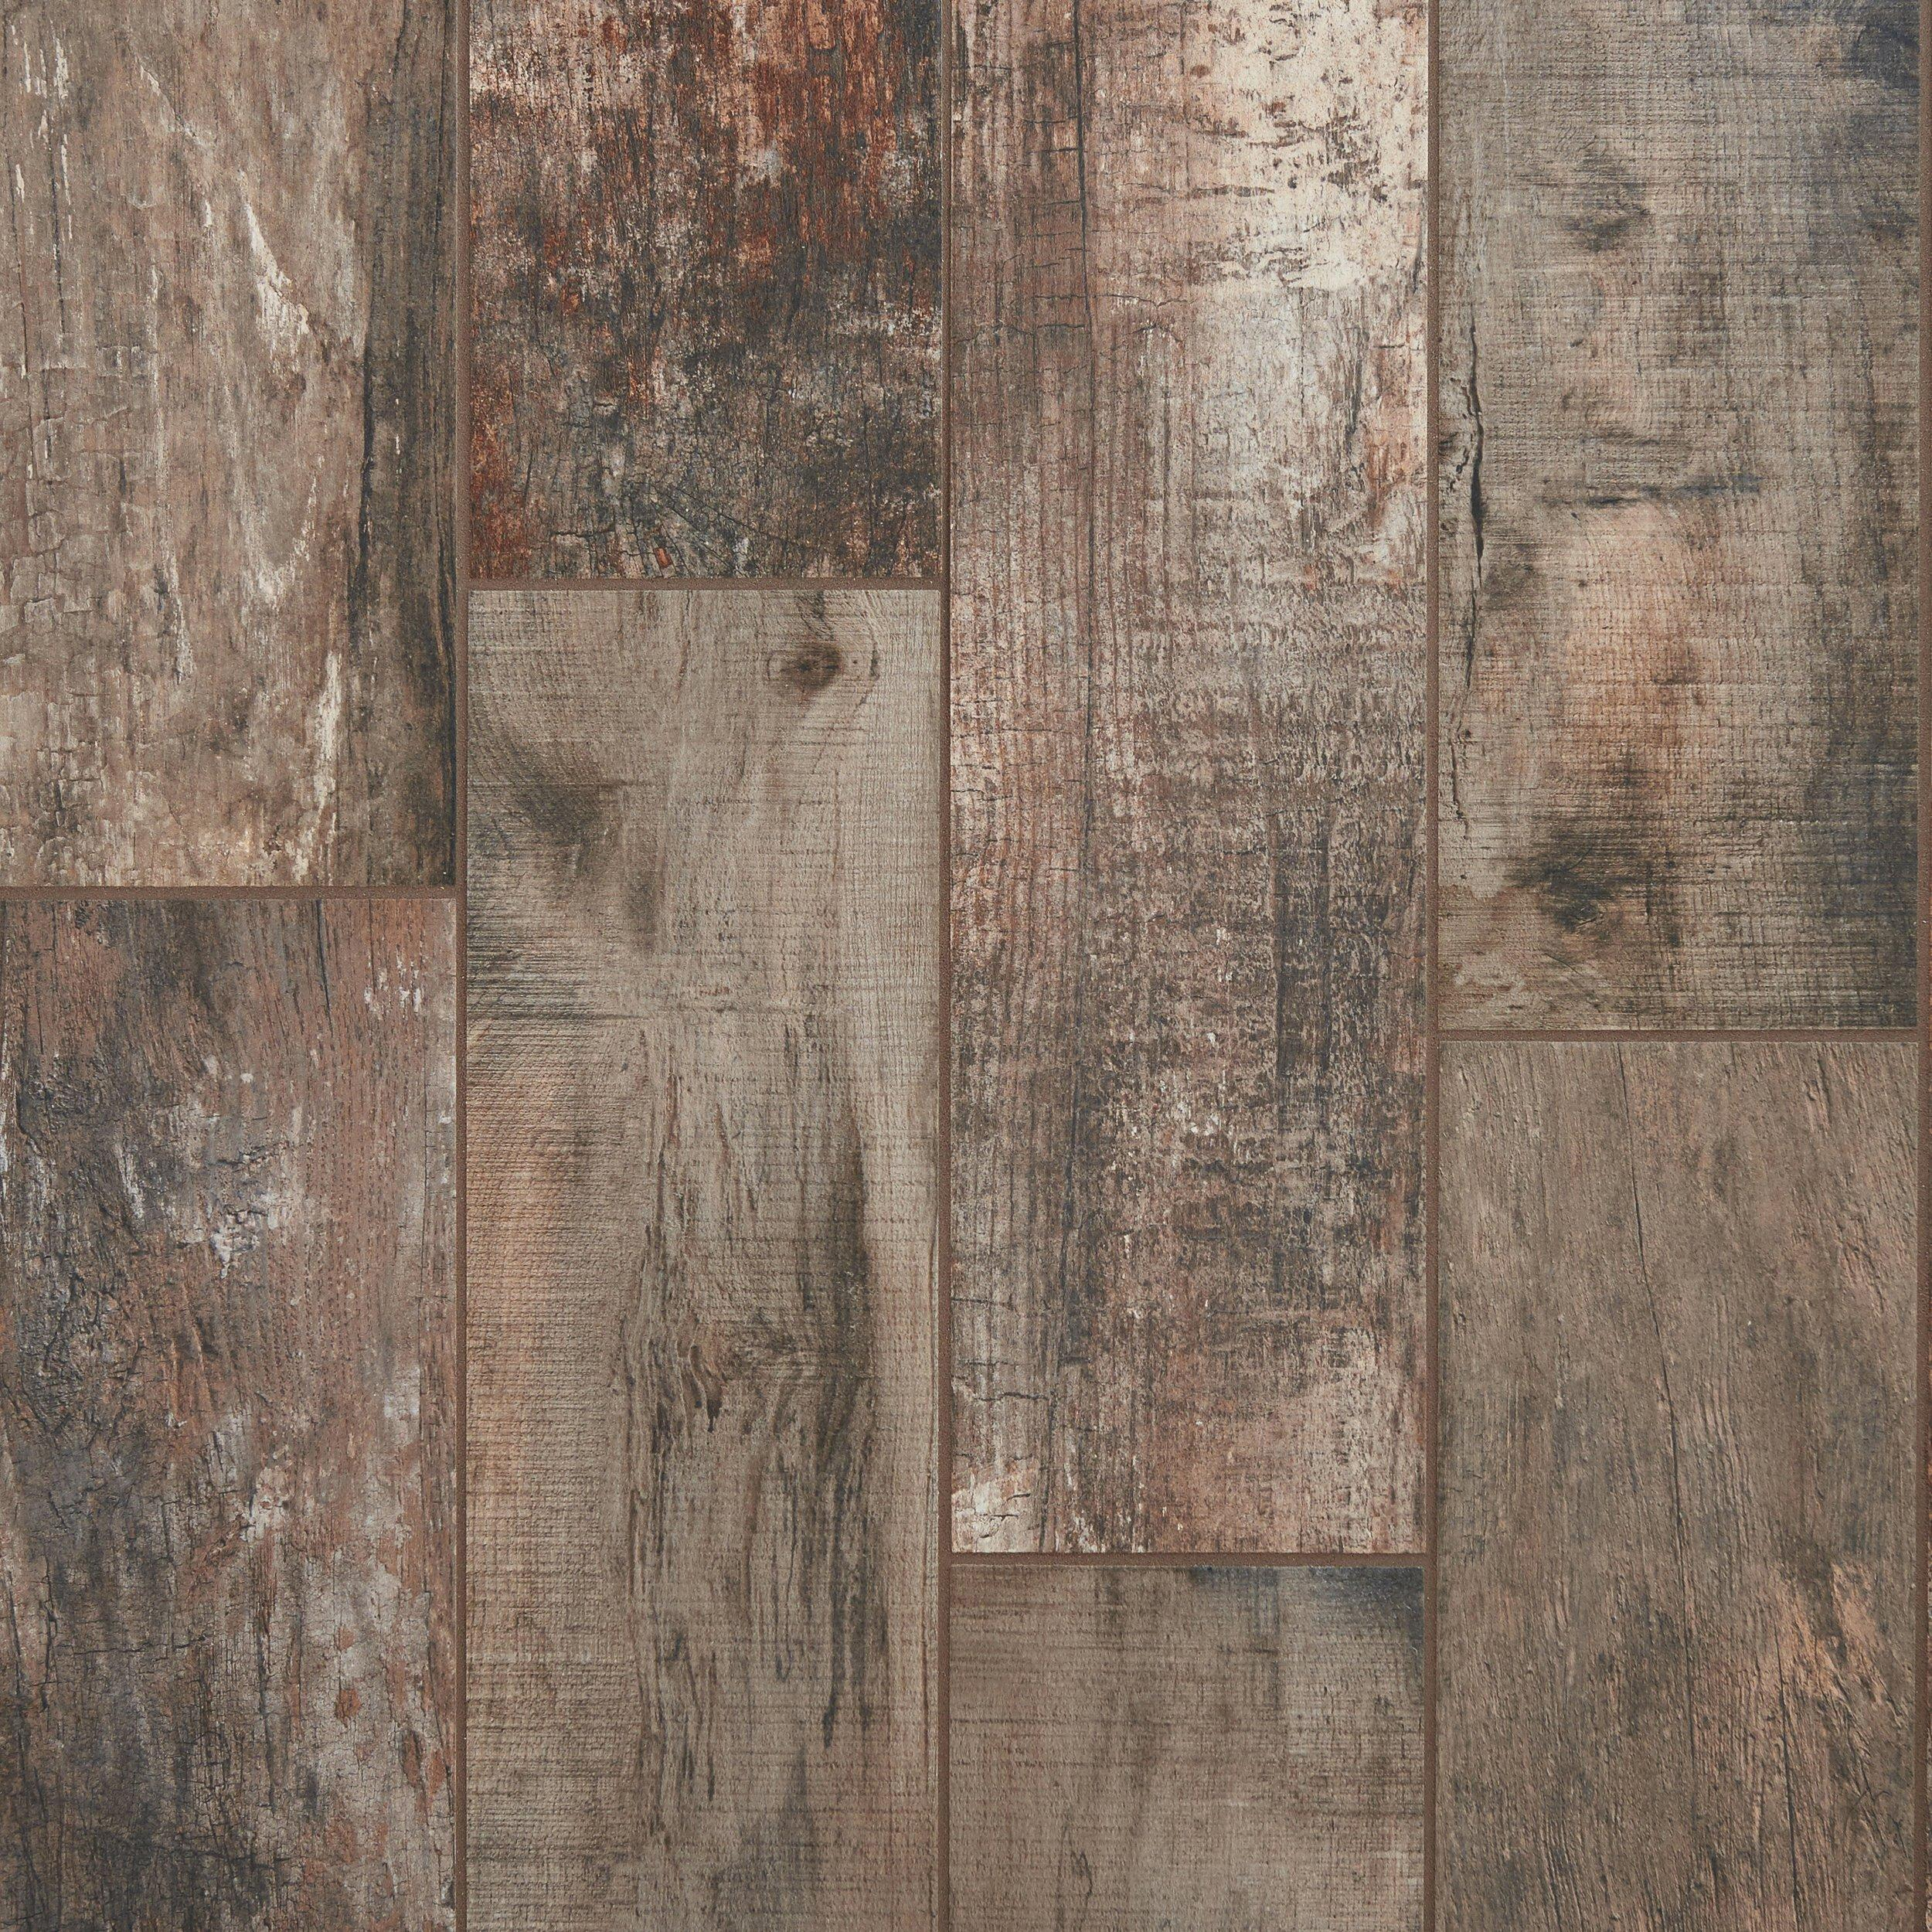 Wood plank tile roanoke multi wood plank porcelain tile 8in x 32in 100344217 dailygadgetfo Choice Image